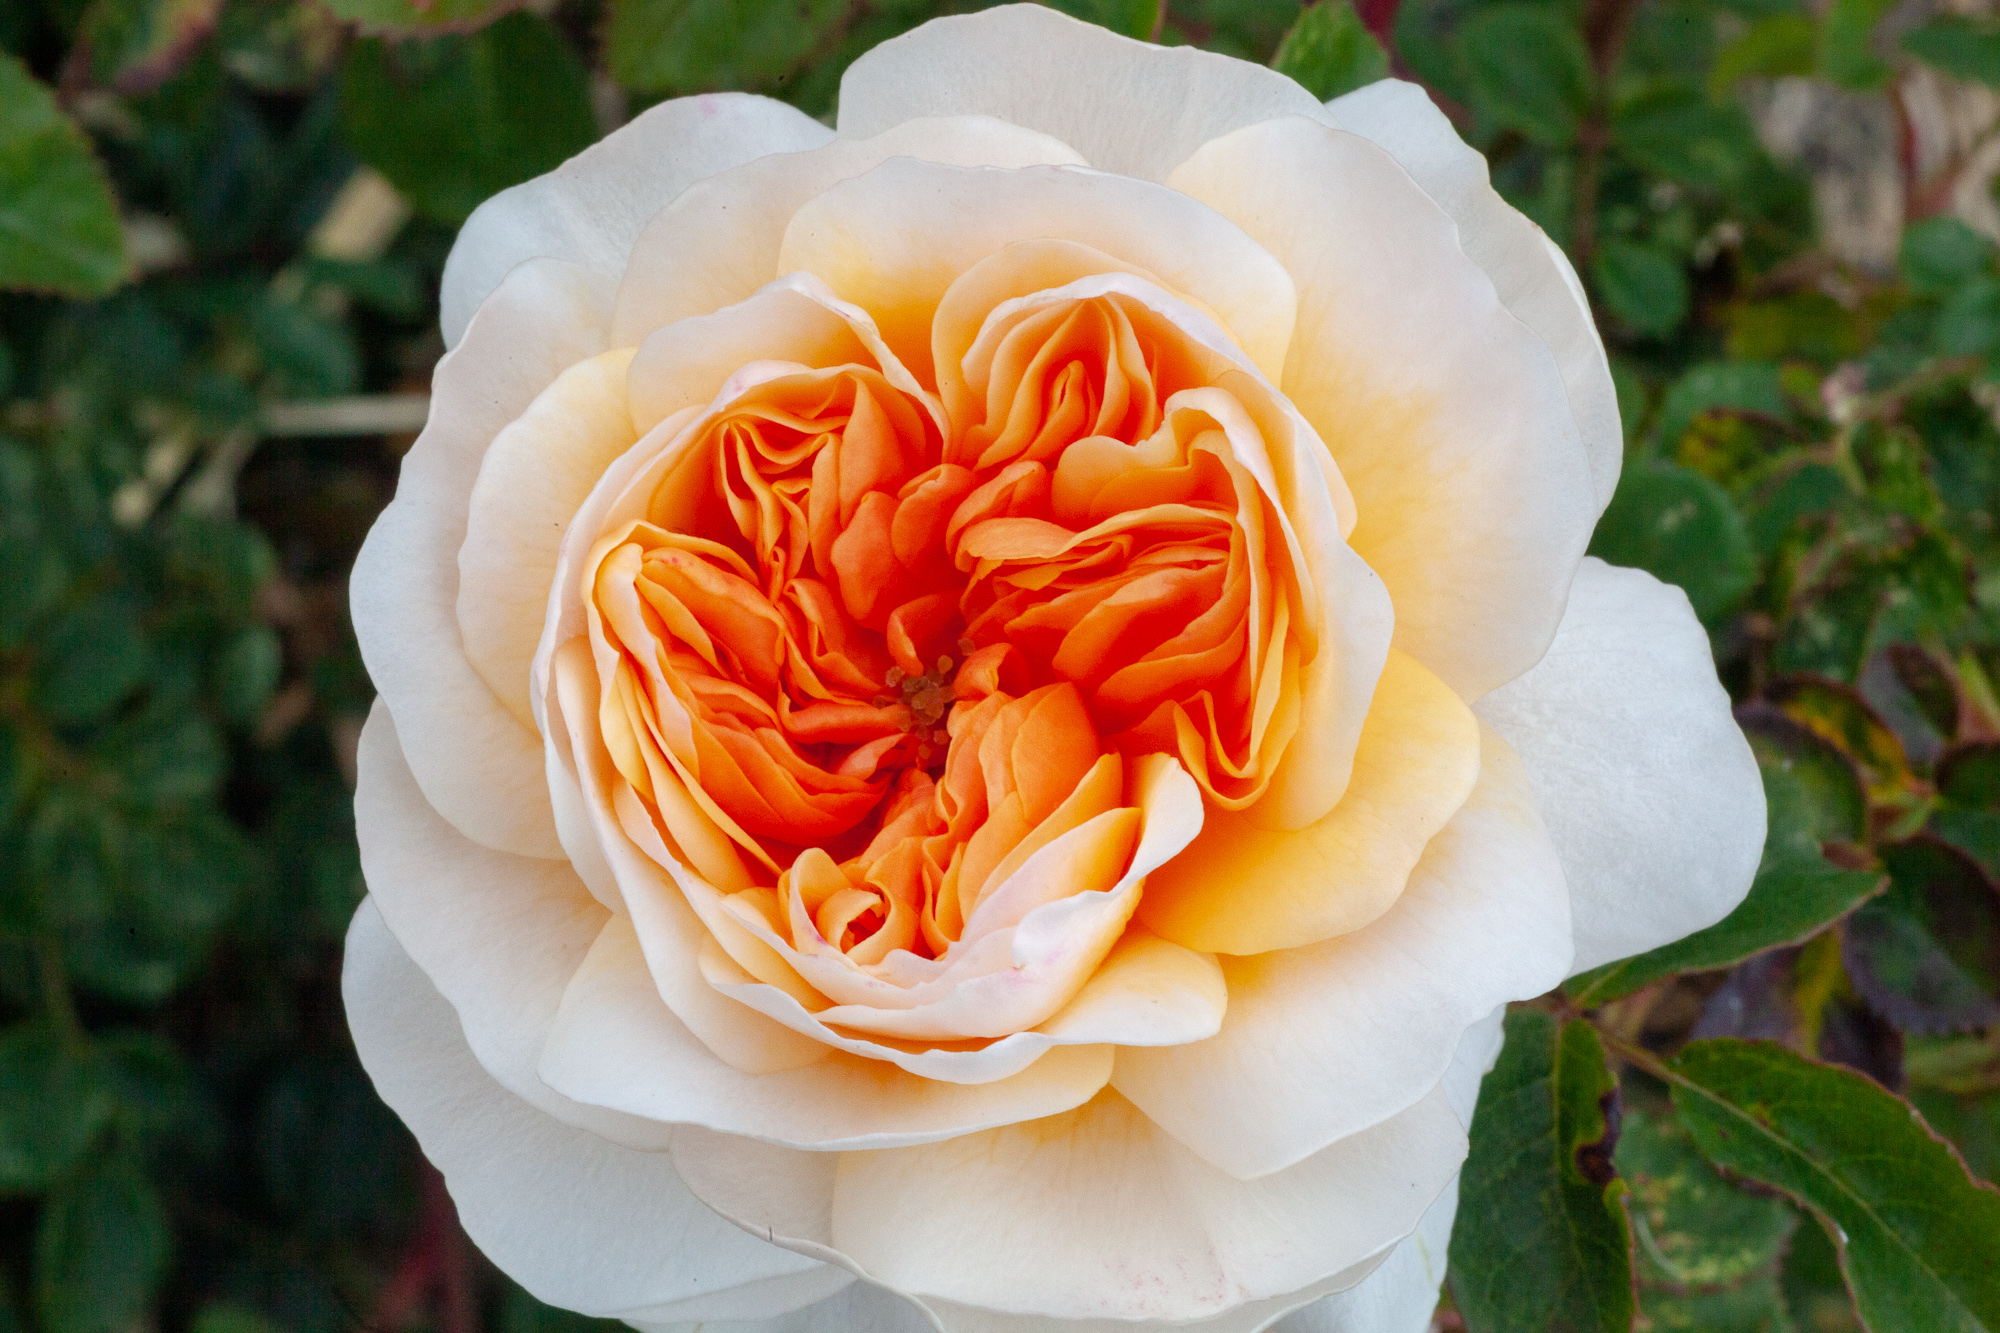 Port Sunlight Rose from David Austin